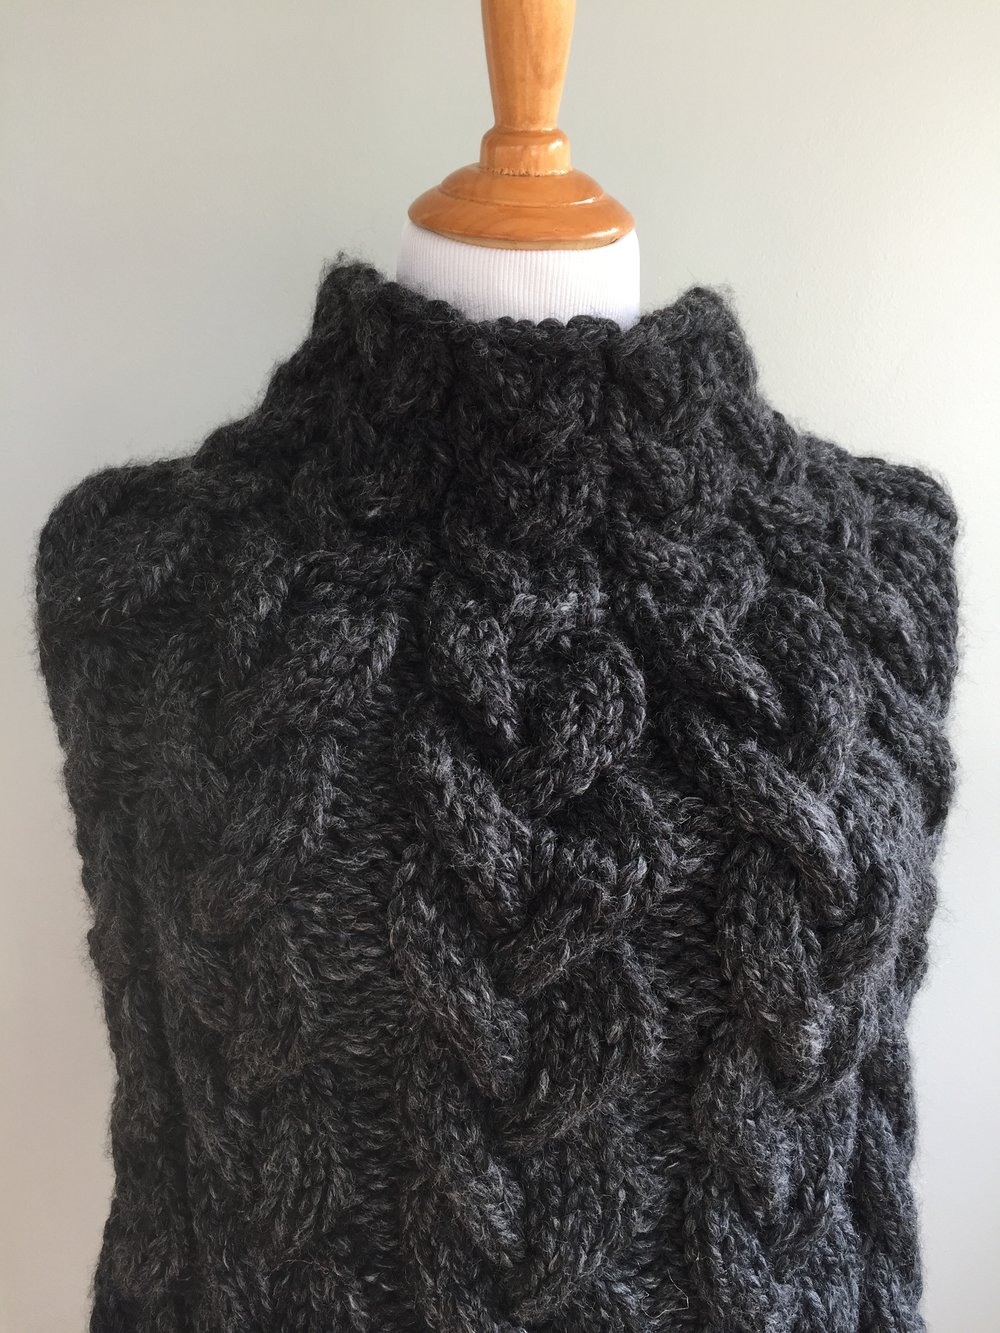 All Cables Knit Poncho Pattern